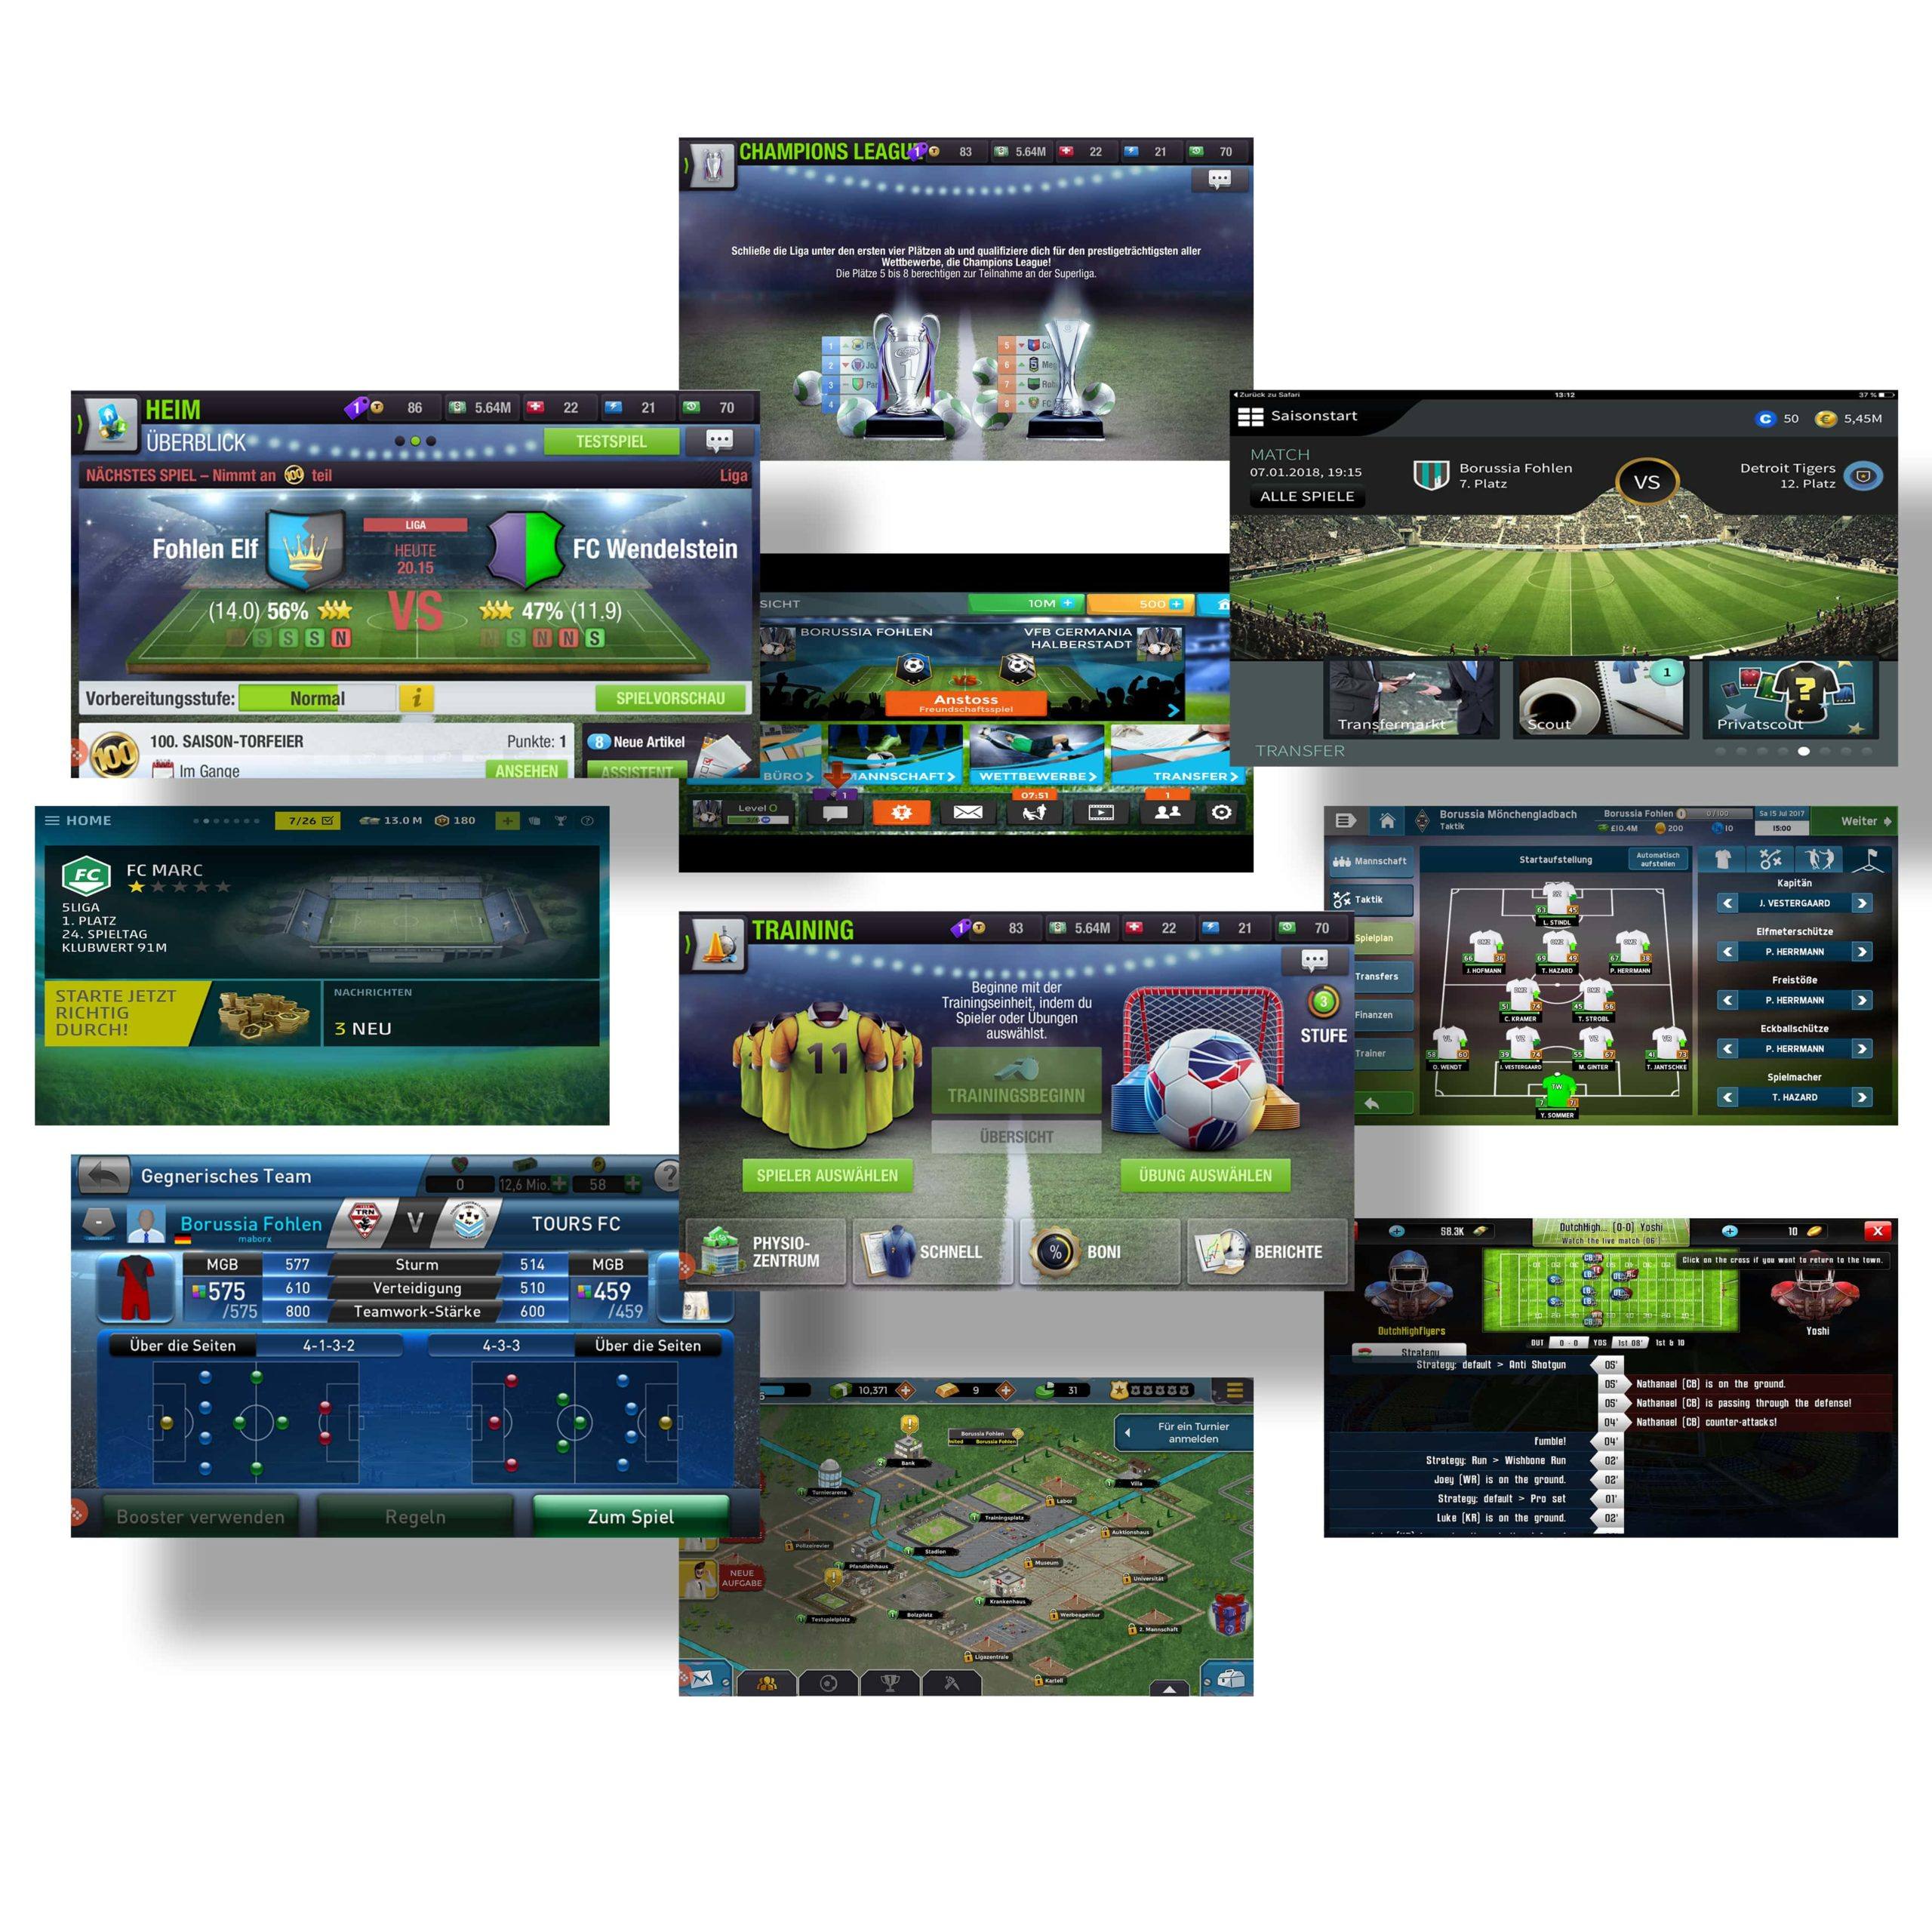 Research on mobile Football strategy games